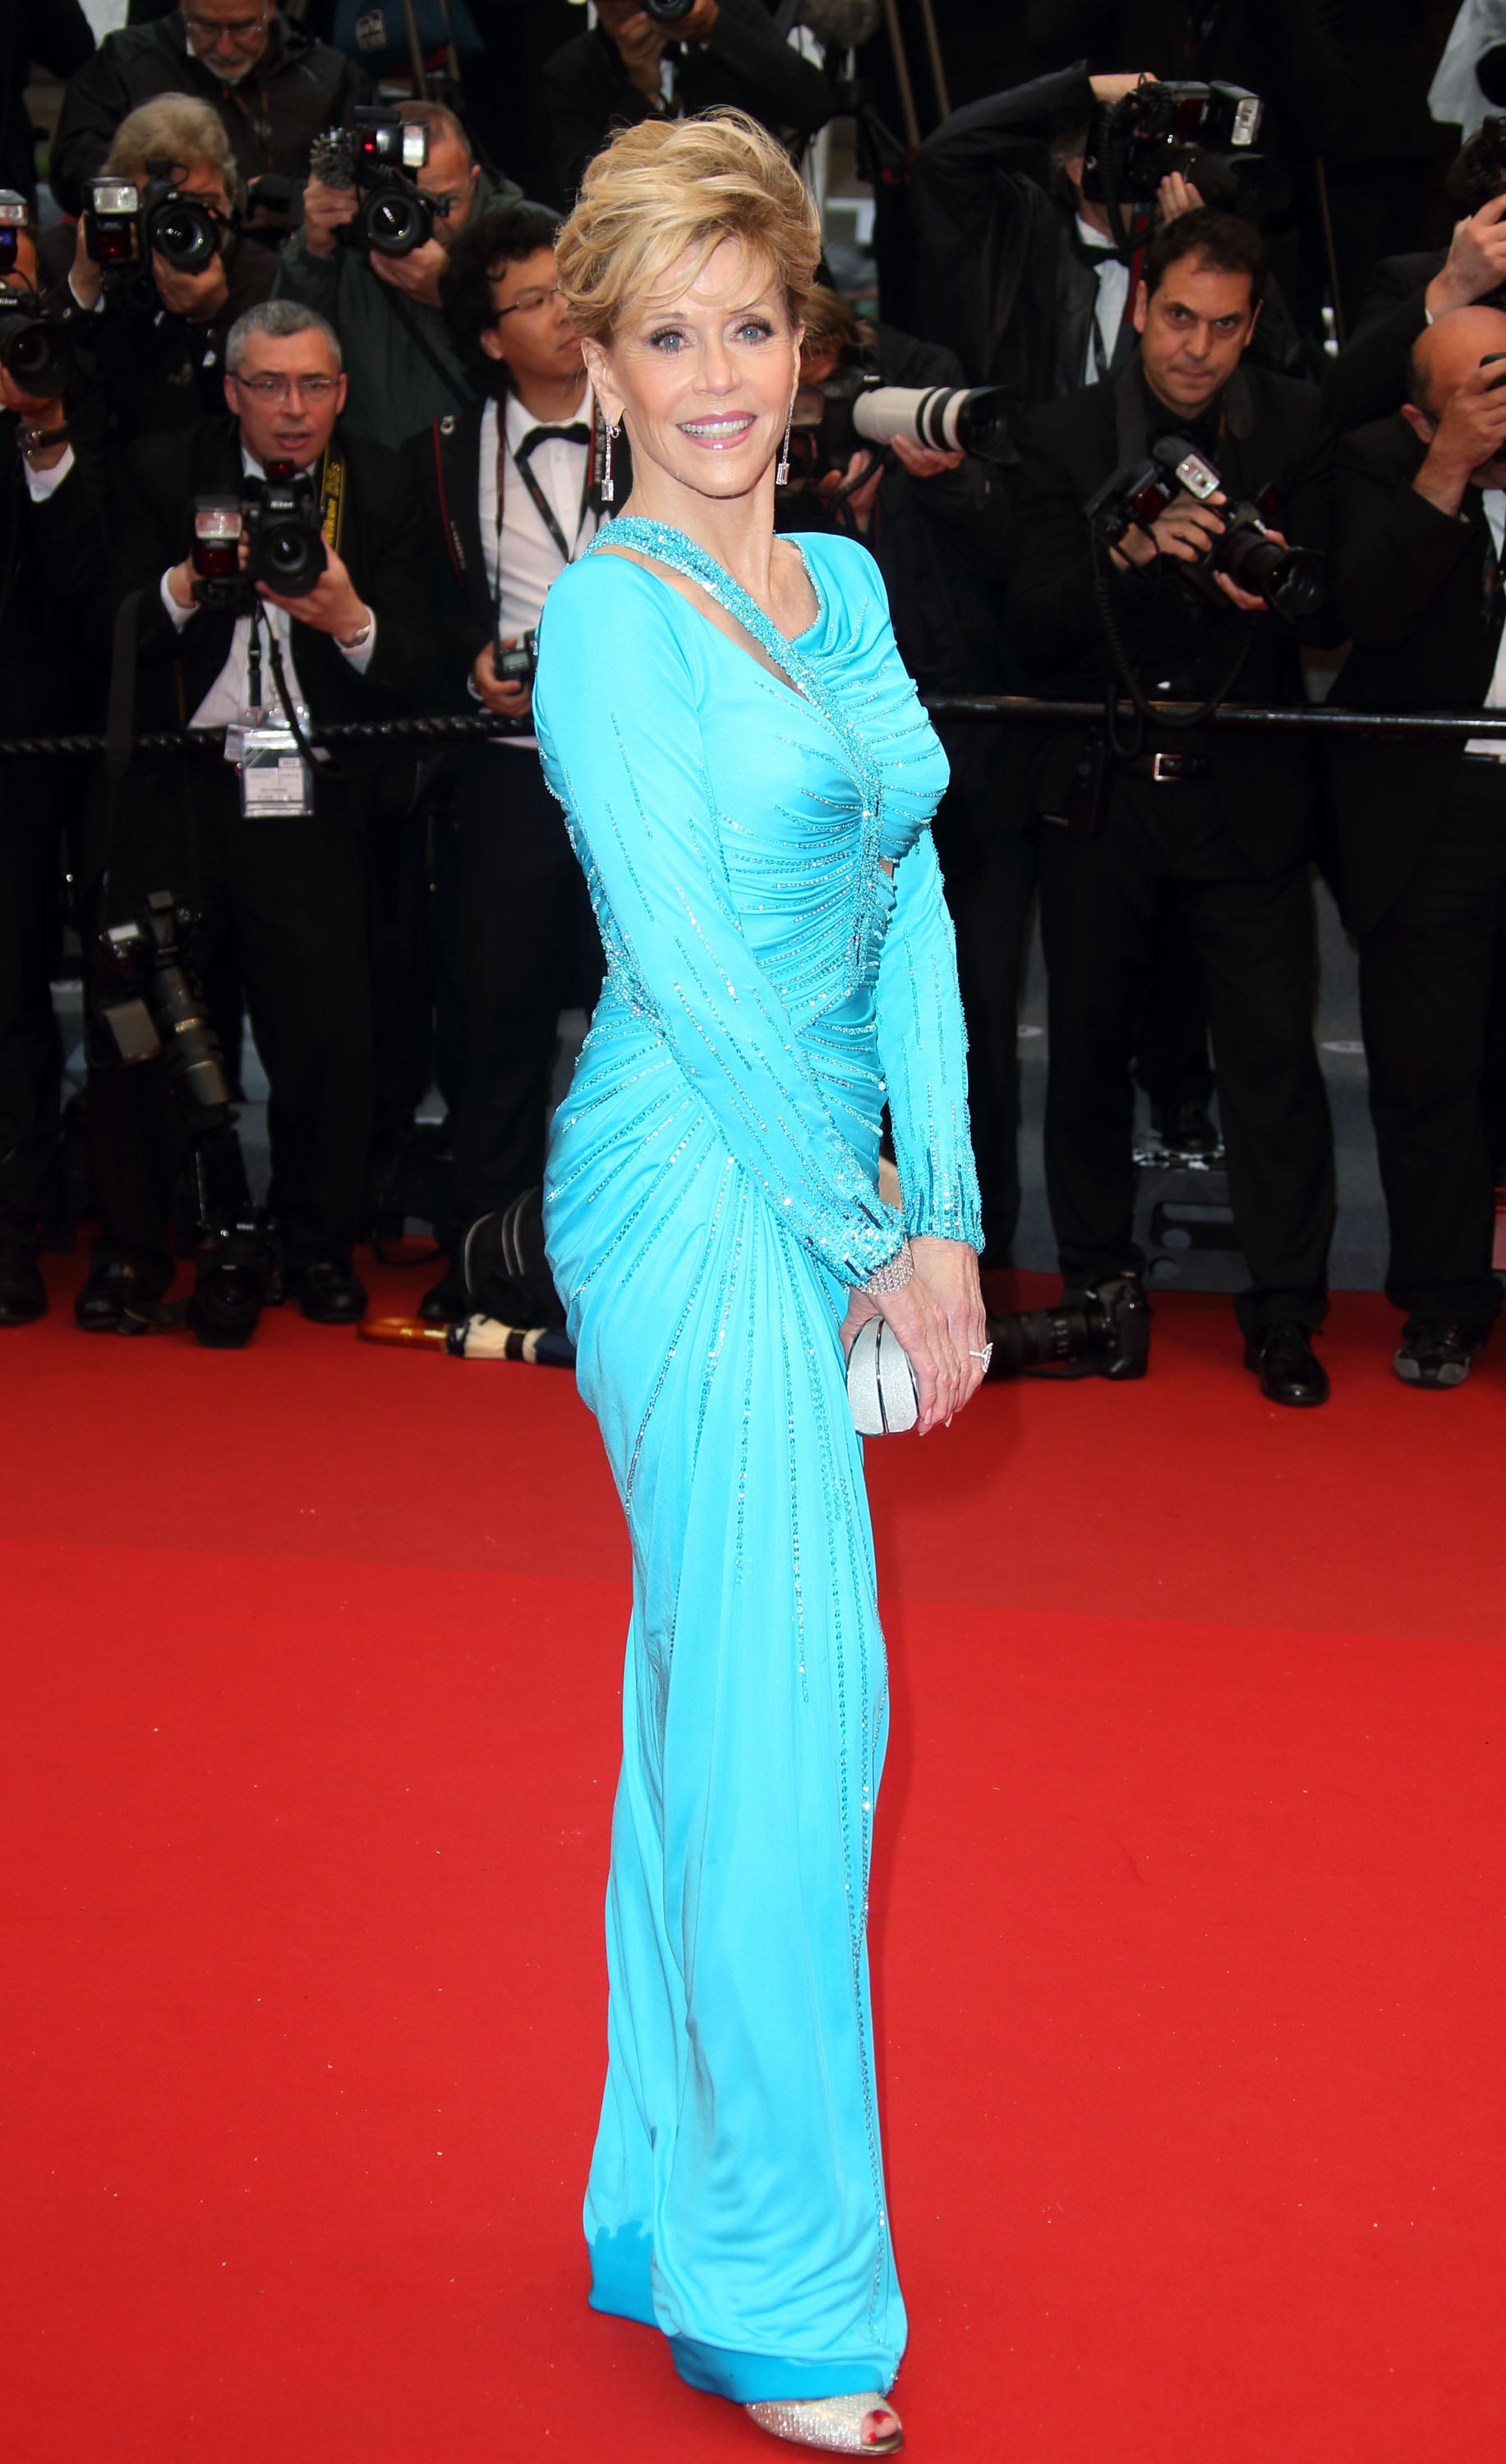 Jane Fonda hit the red carpet at the Jimmy P. premiere.